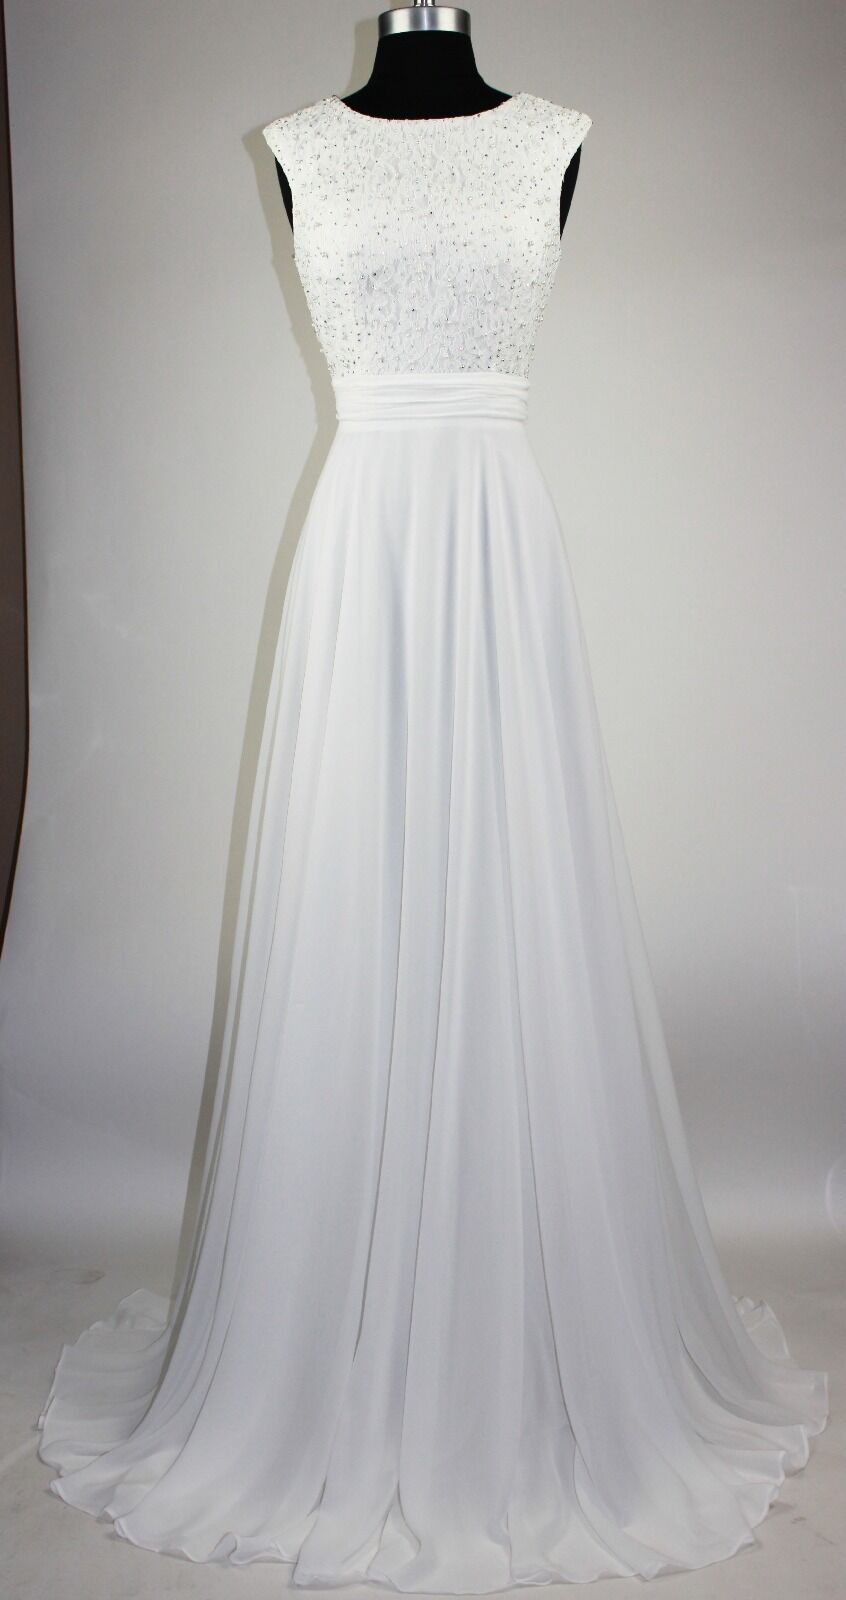 Women's Formal Sheer Pearl Sequins beaded Long Evening Gown prom dress